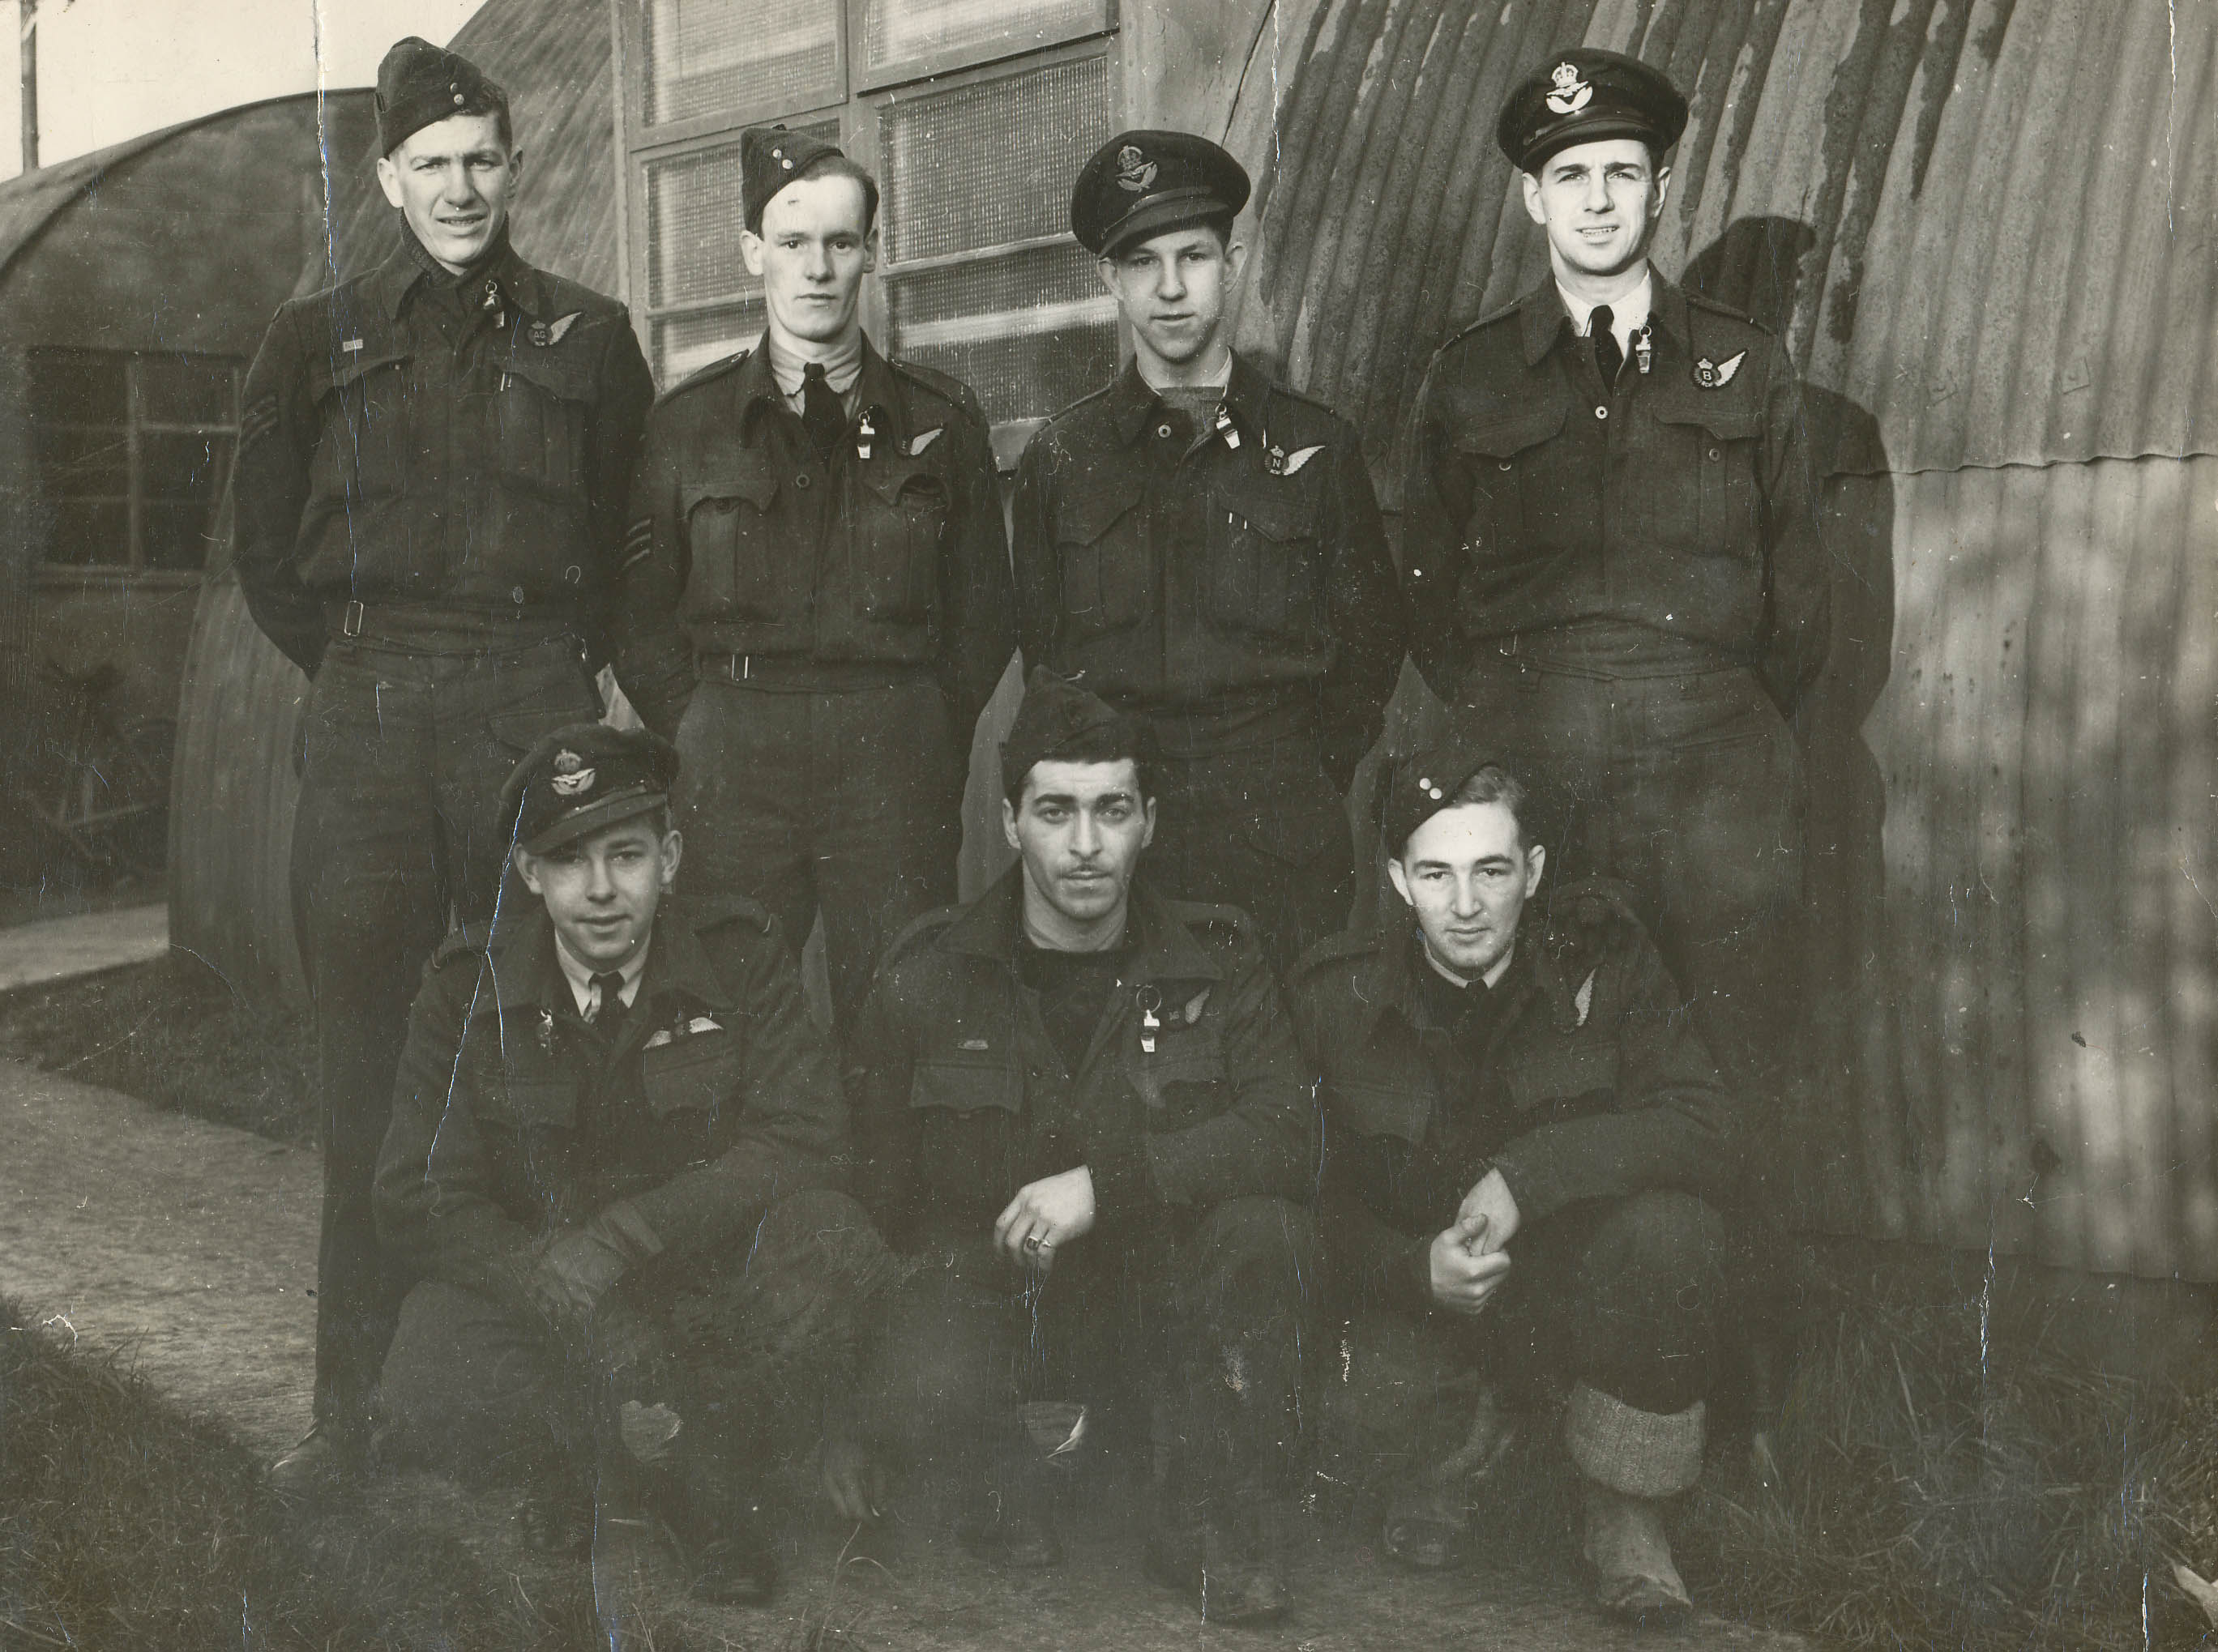 In 1944, Frank Poole's crew from the RCAF's 420 Squadron, which was part of No. 6 Bomber Group, in Yorkshire, United Kingdom: (front row, left to right): Bob Ireland, pilot; Sam Camerman, rear gunner; Leo Penny, wireless operator; (back row, left to right): Frank Poole, mid upper gunner; Ron Hutchinson, Royal Air Force engineer; Billy Dennis, navigator; and Bill Webb, bomb aimer. All except Frank Poole and Sam Camerman perished when their aircraft was shot down on a mission to bomb Magdeburg, Germany on January 16, 1945. PHOTO: The Memory Project